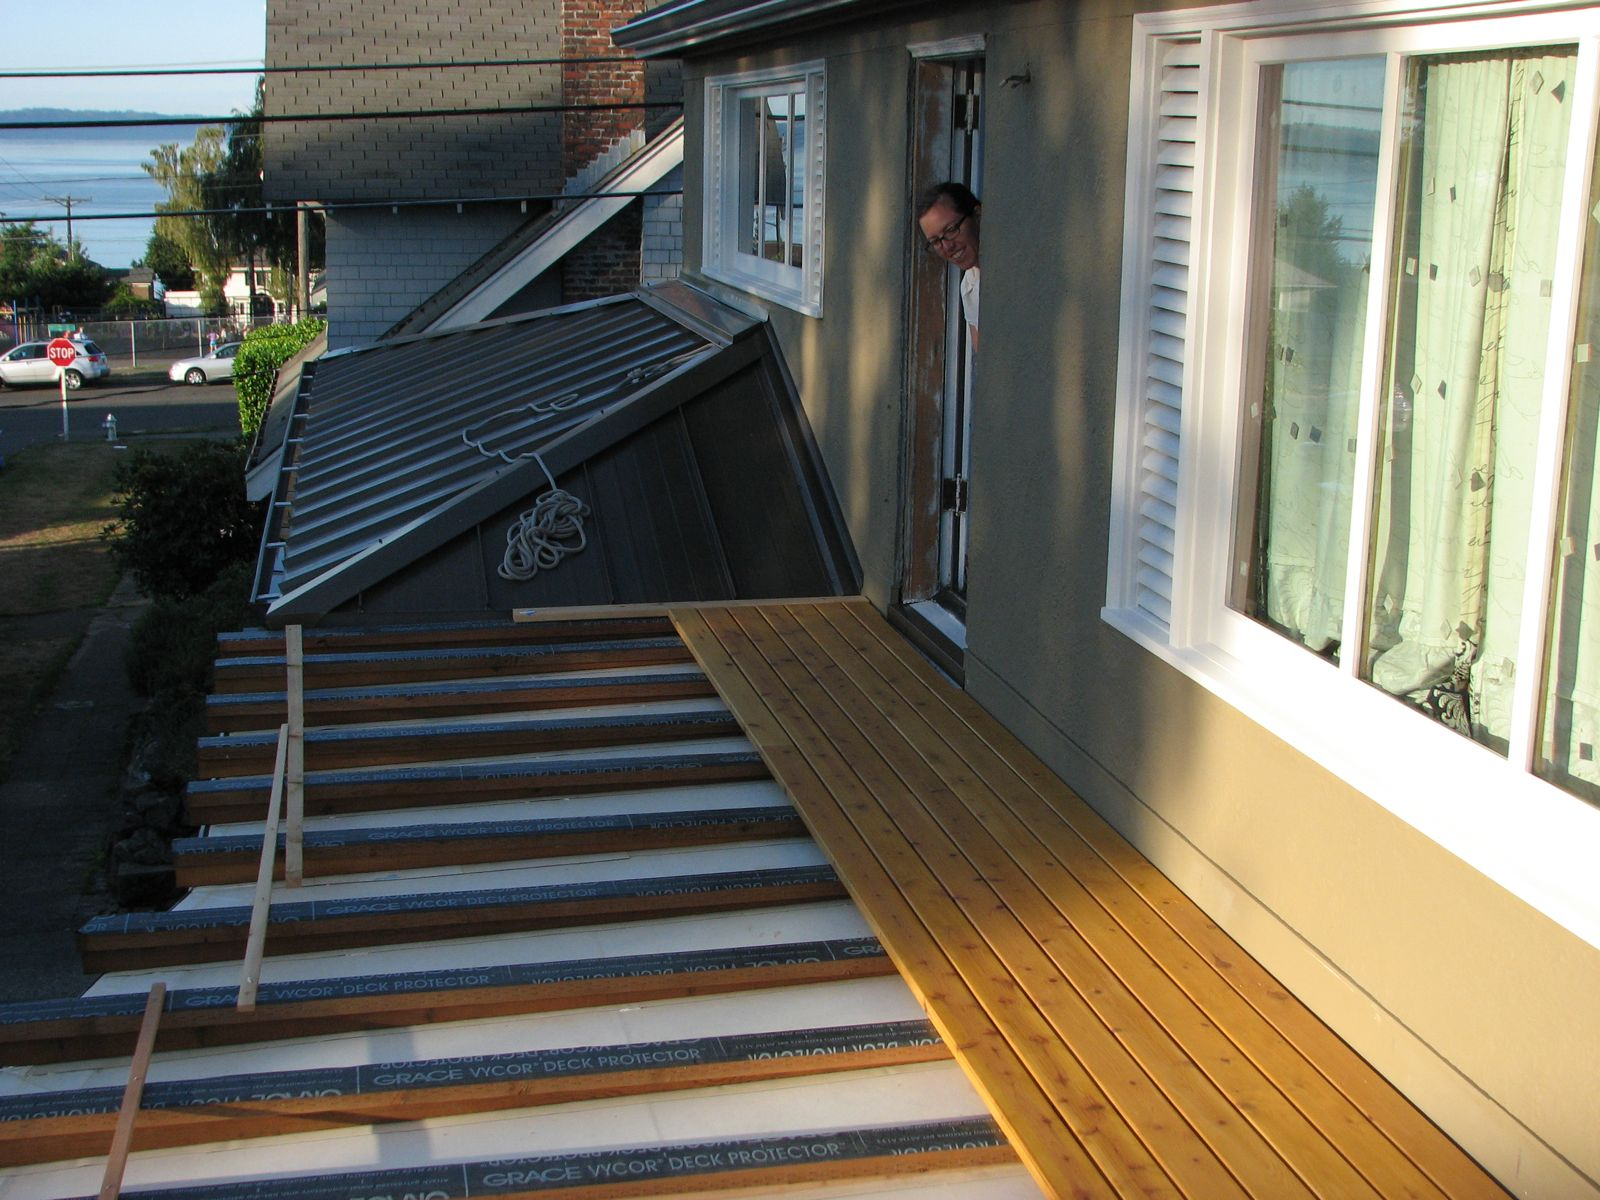 Balcony part ii or wood deck over epdm deck on sleepers for Balcony on roof